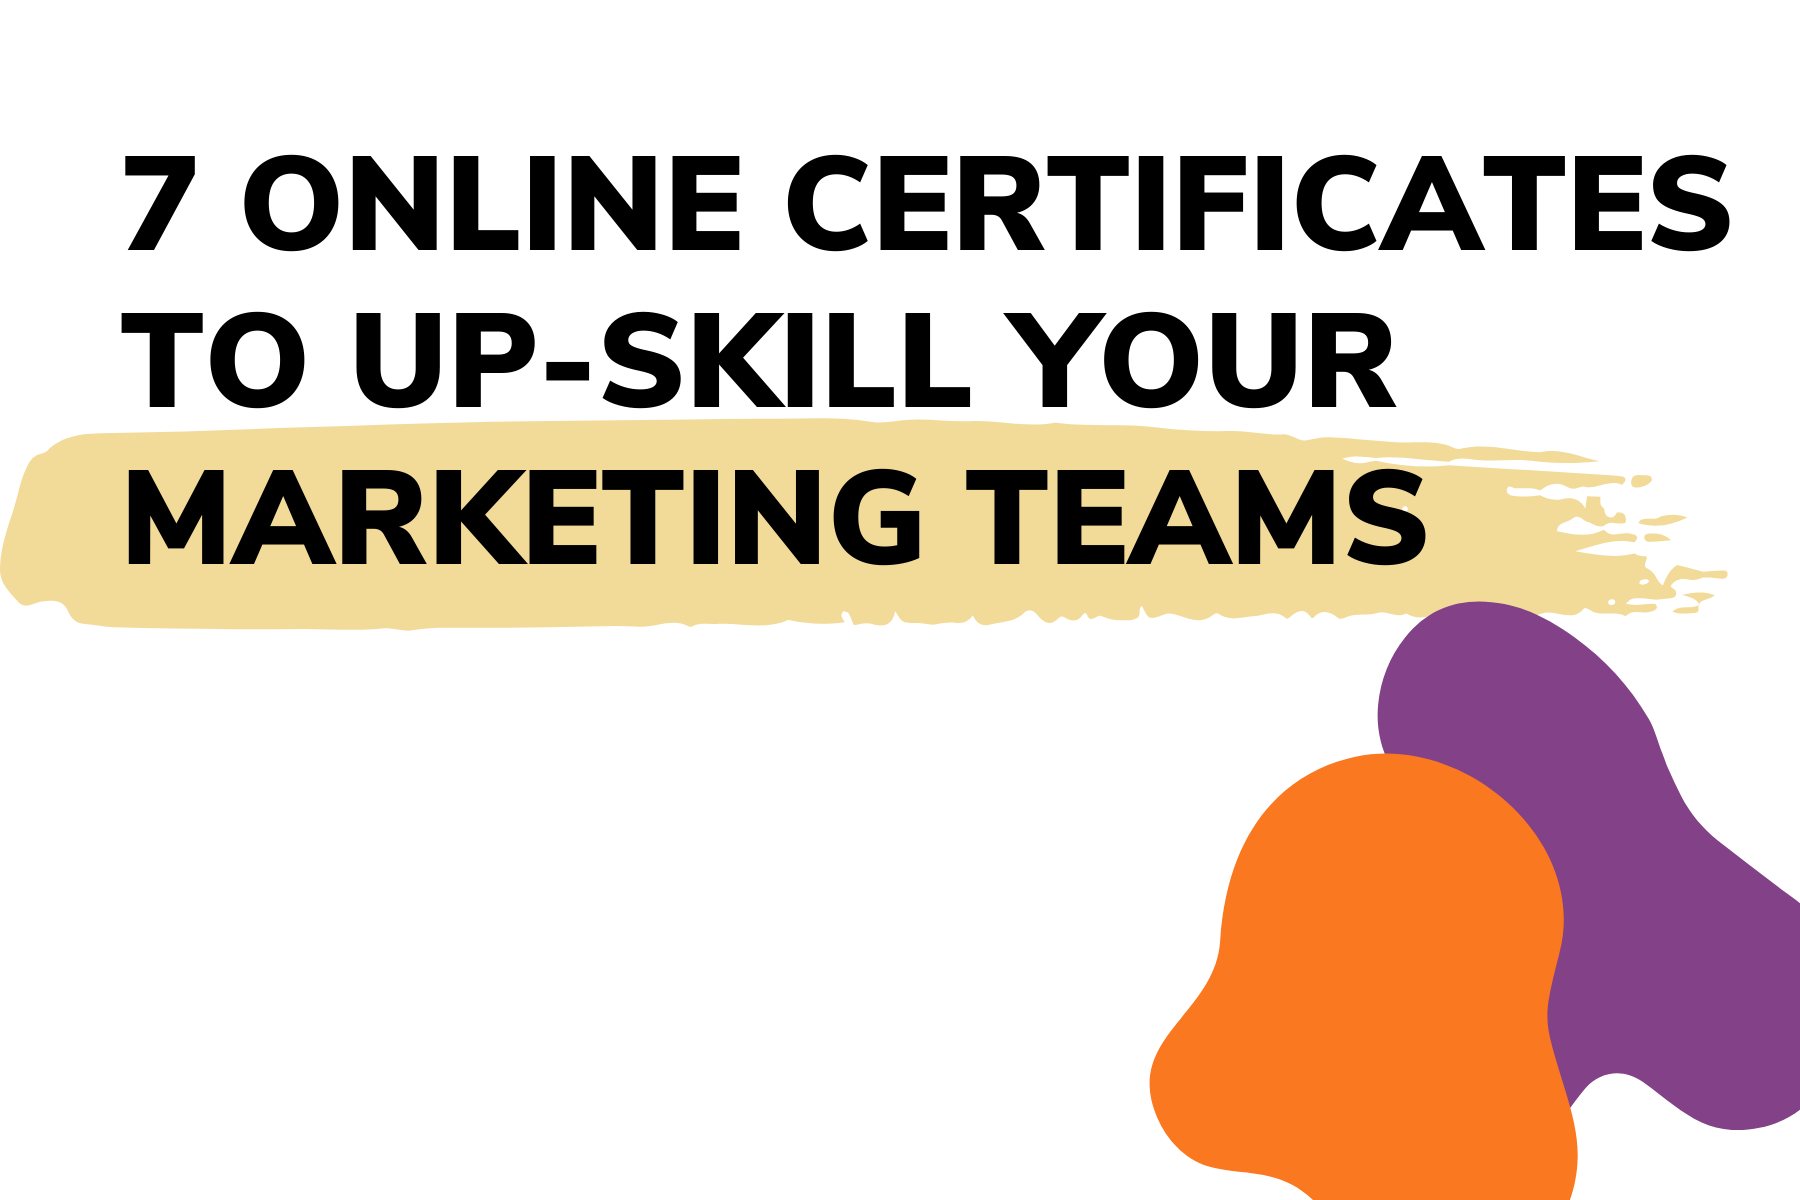 Our top 7 online certificates to up-skill your marketing teams